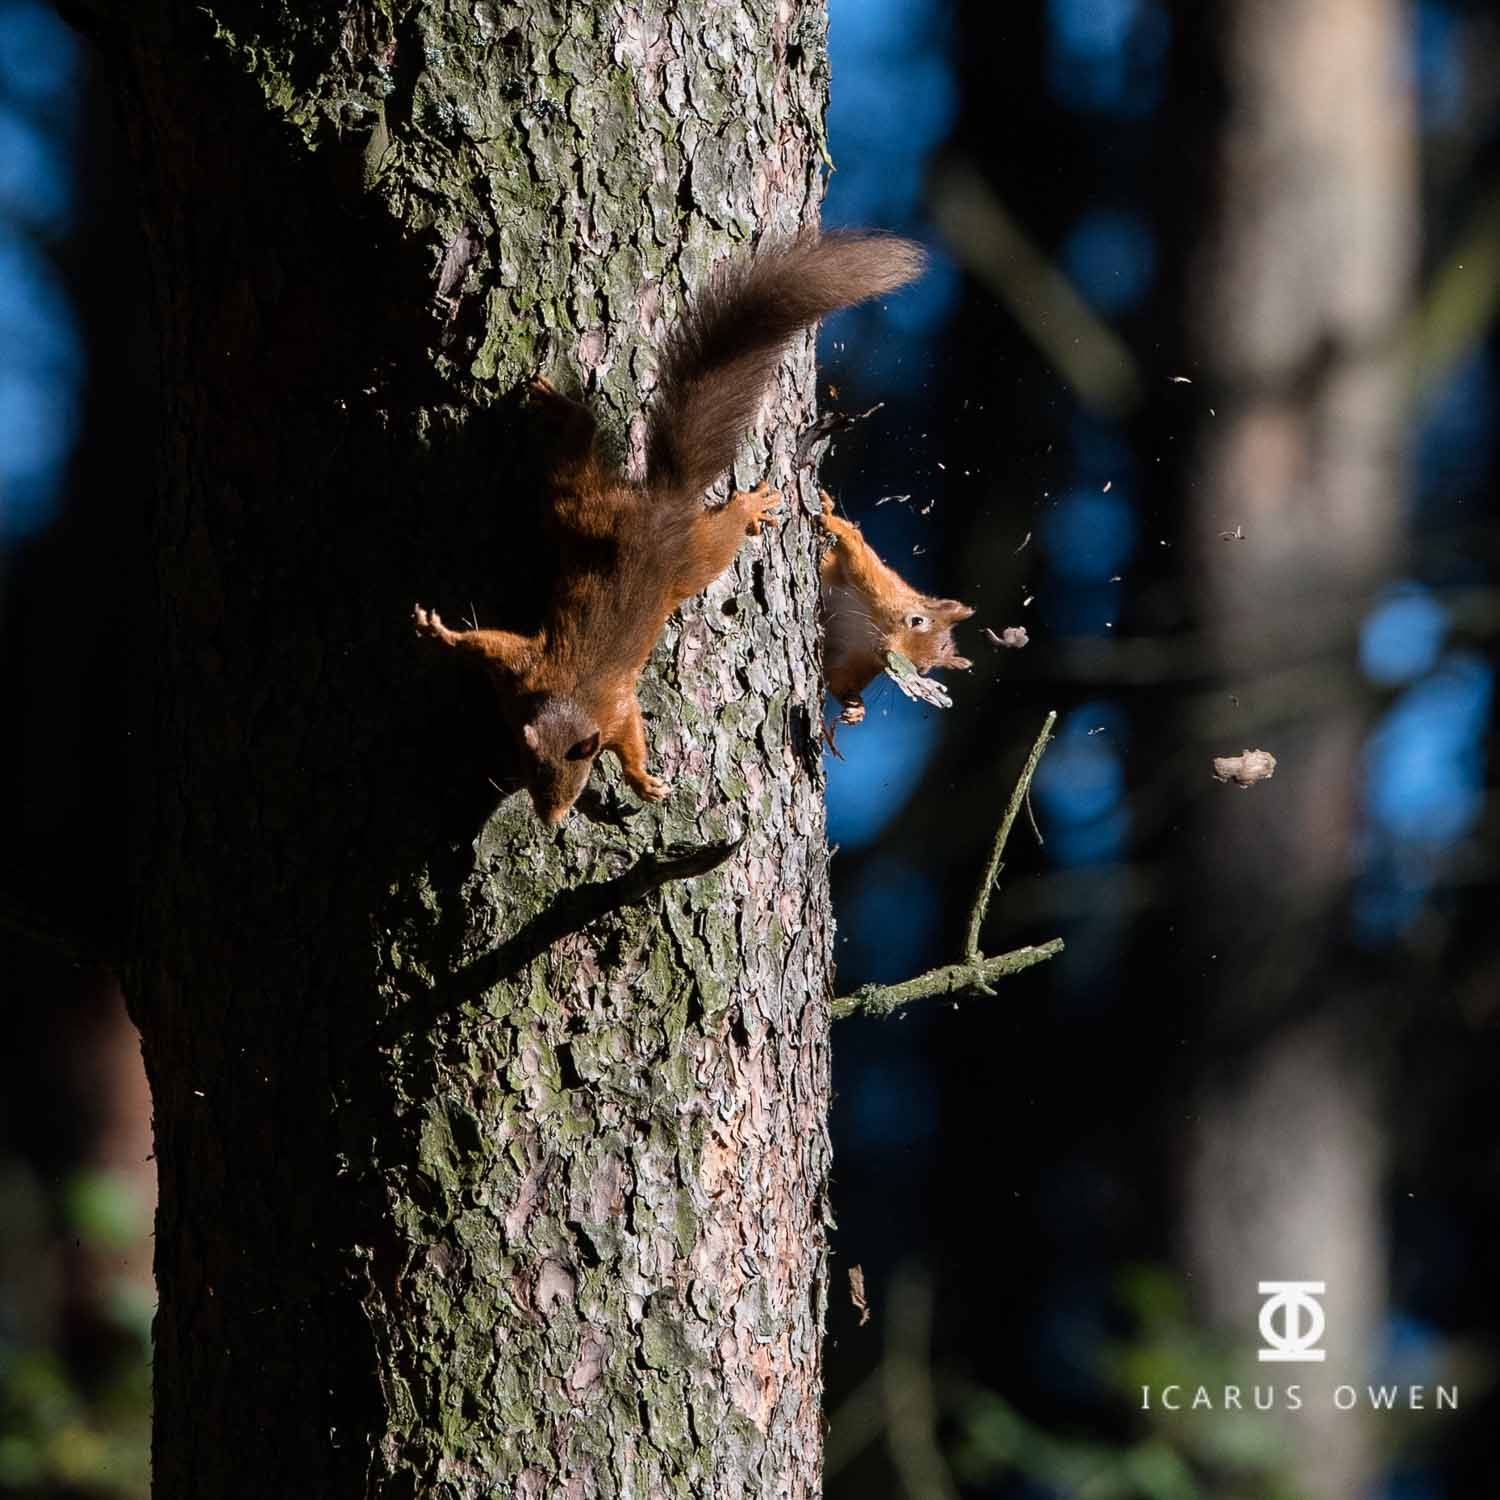 Two red squirrels chasing each other. Bark debris thrown up from their feet.